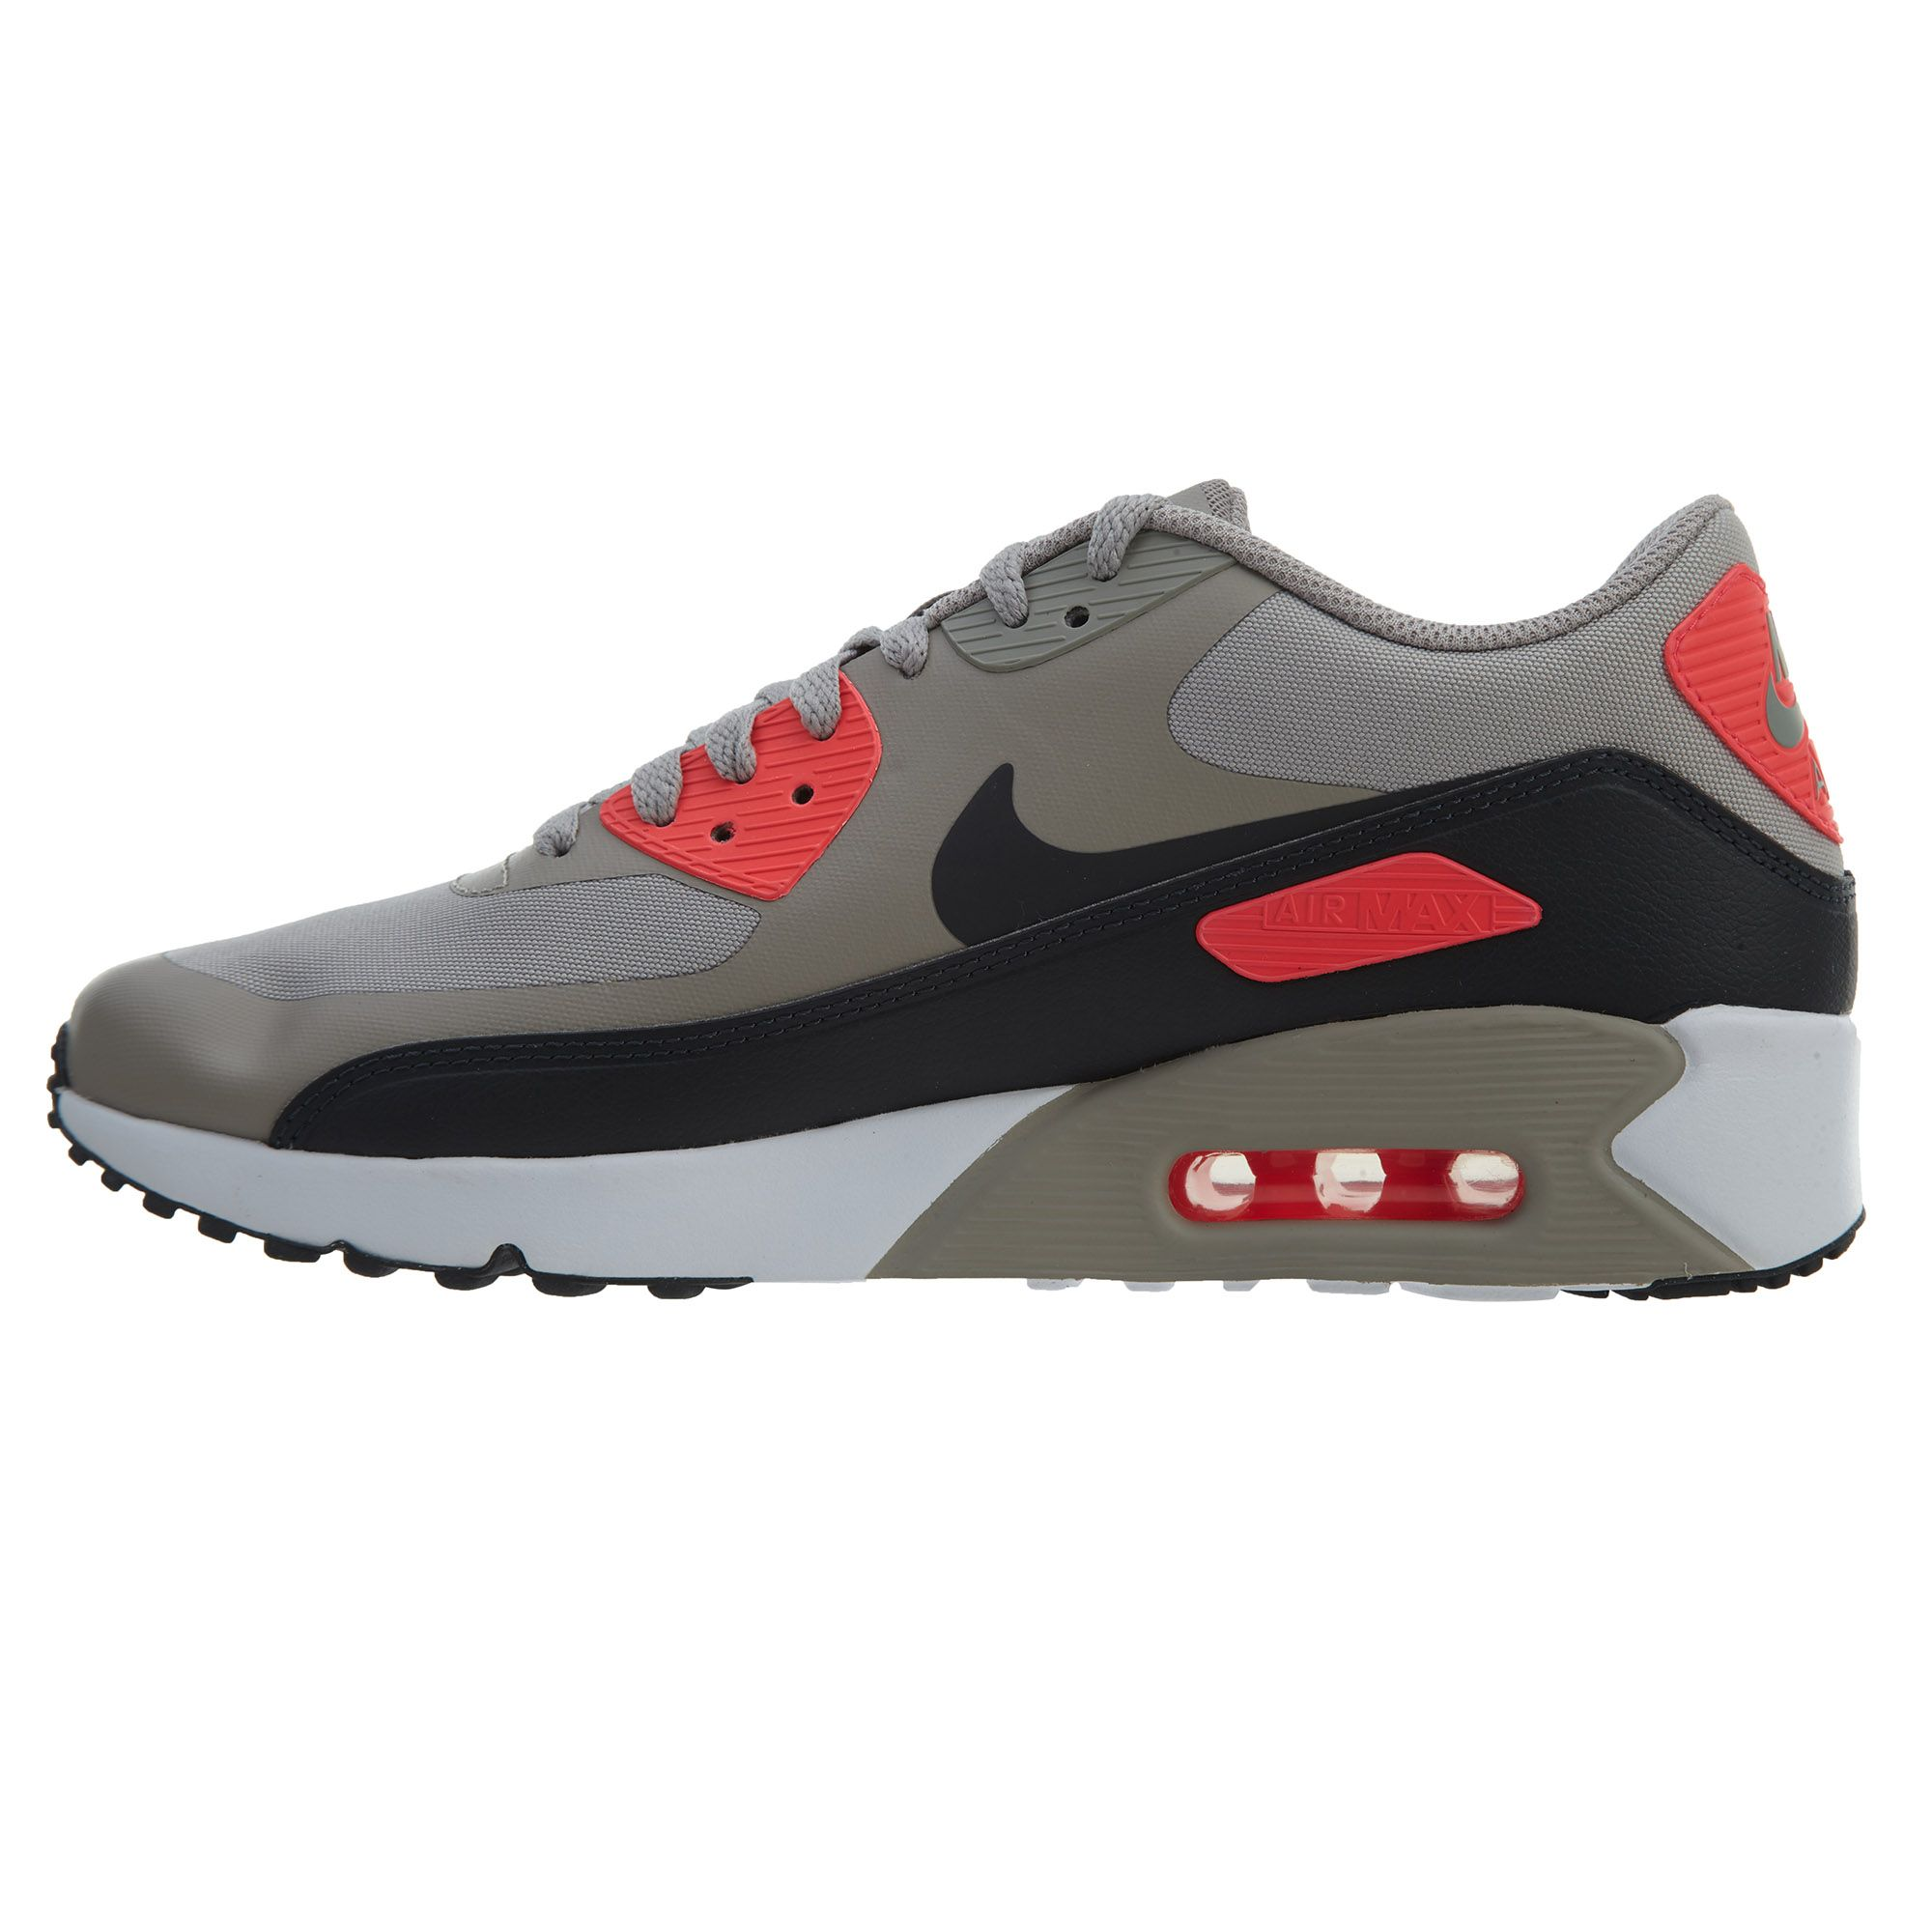 17351c754b86 Nike Mens Air Max 90 Ultra 2.0 essential Low Top Lace Up Running Sneaker